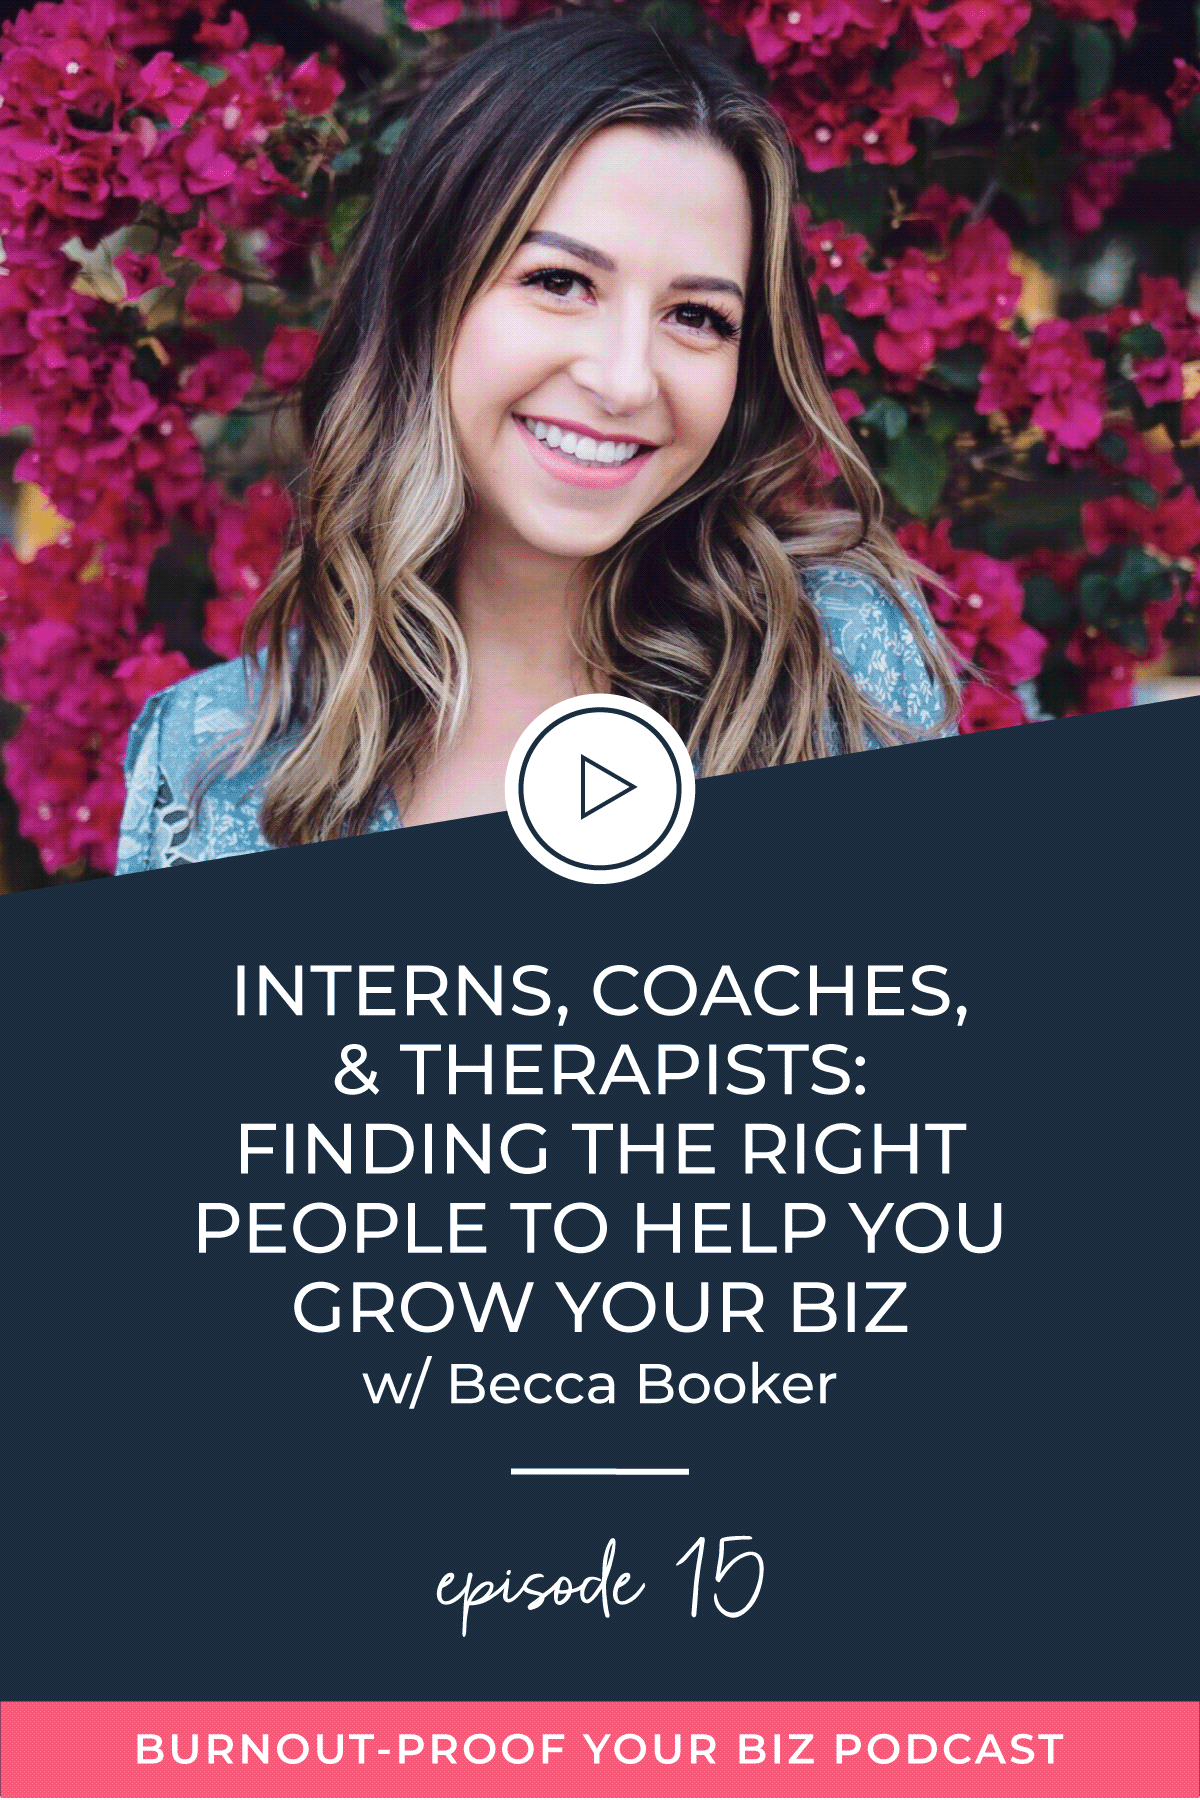 Burnout-Proof Your Biz Podcast with Chelsea B Foster | Episode 015 - Interns, Coaches, and Therapists - Finding the Right People to Help You Grow with Becca Booker | Learn how to run your biz and live your dream life on your own terms without the fear of burnout.